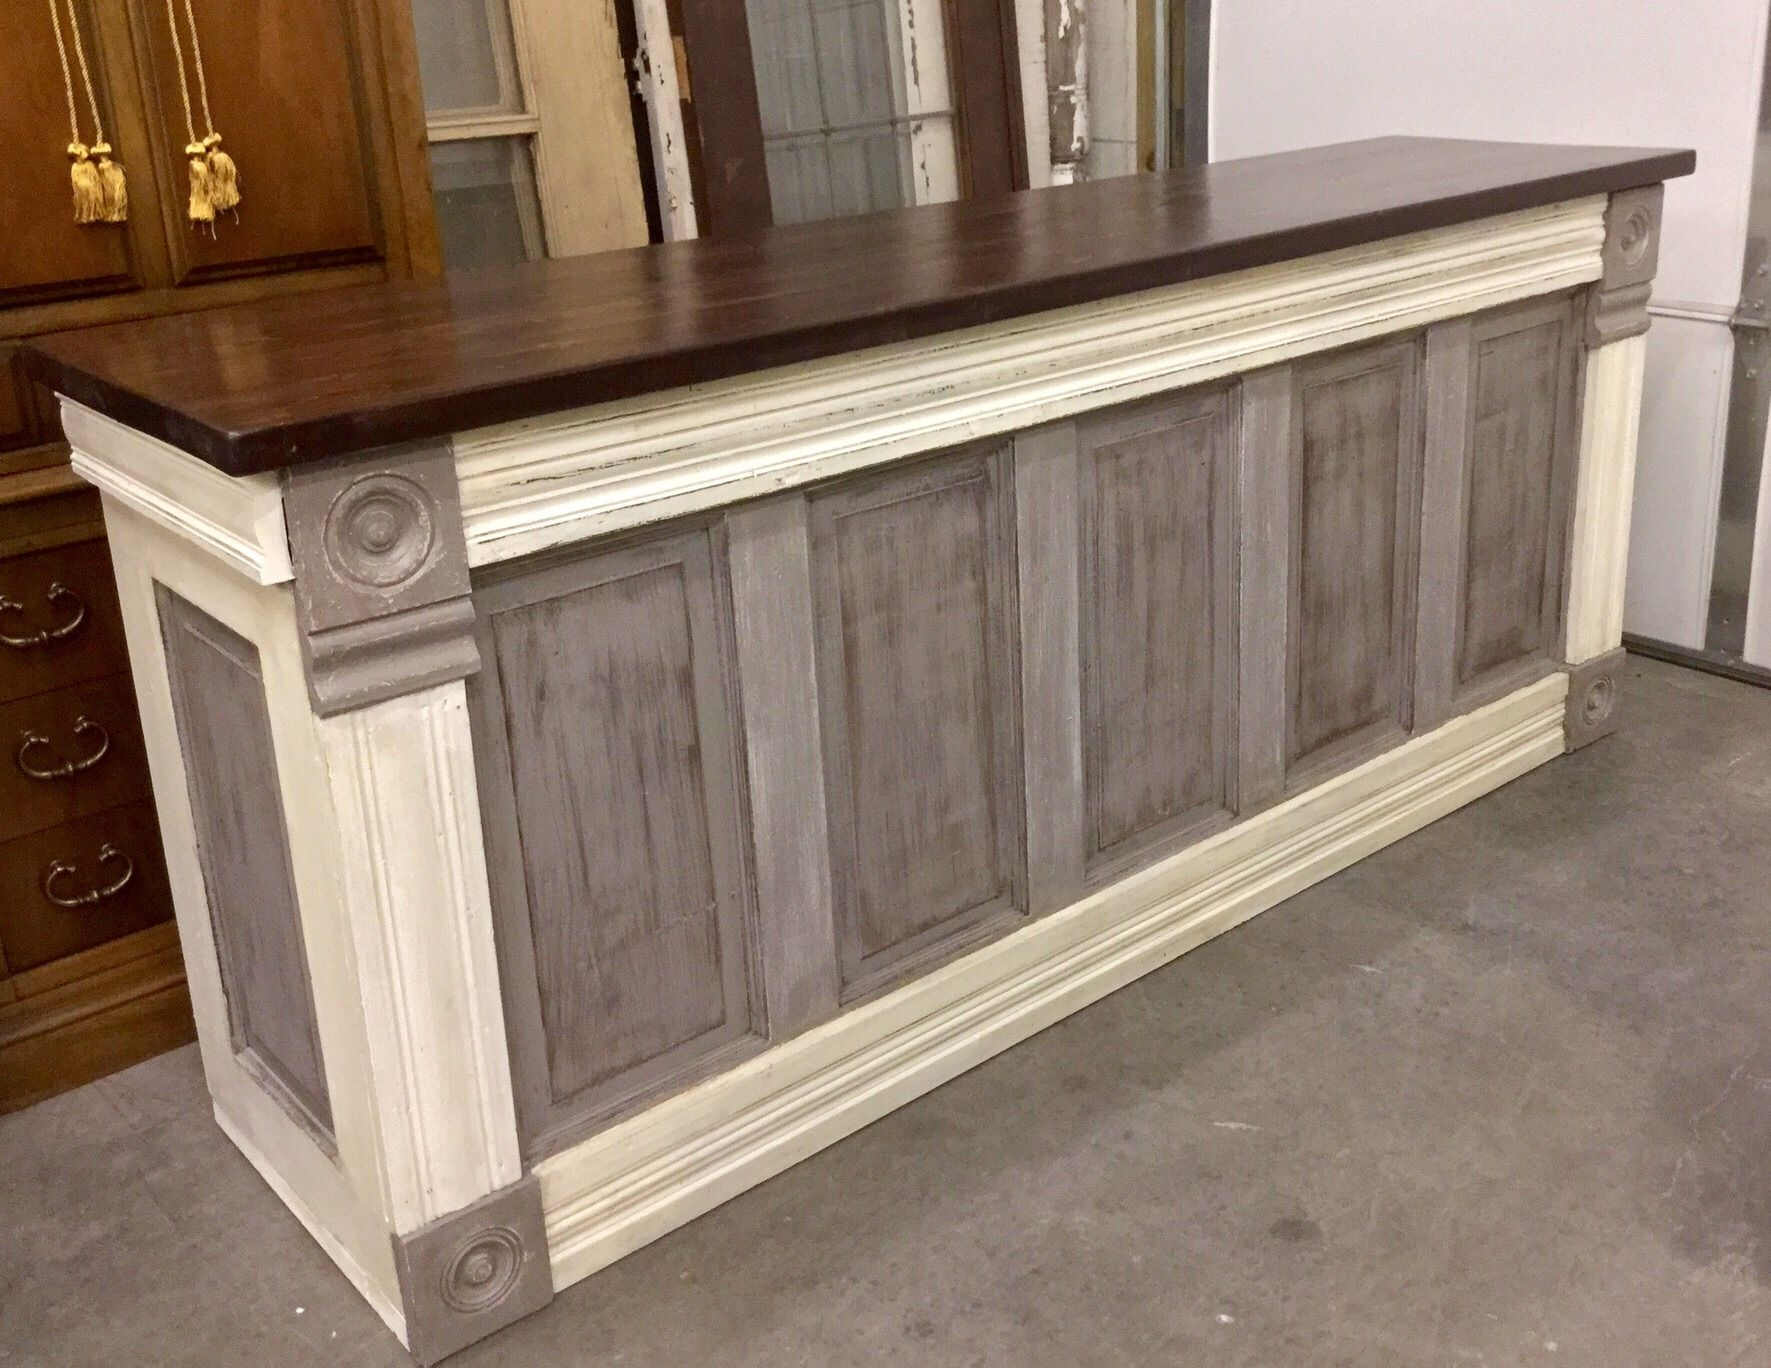 Just Finished This Urban Chic Custom Counter This Evening. I Build pertaining to Helms Sideboards (Image 20 of 30)